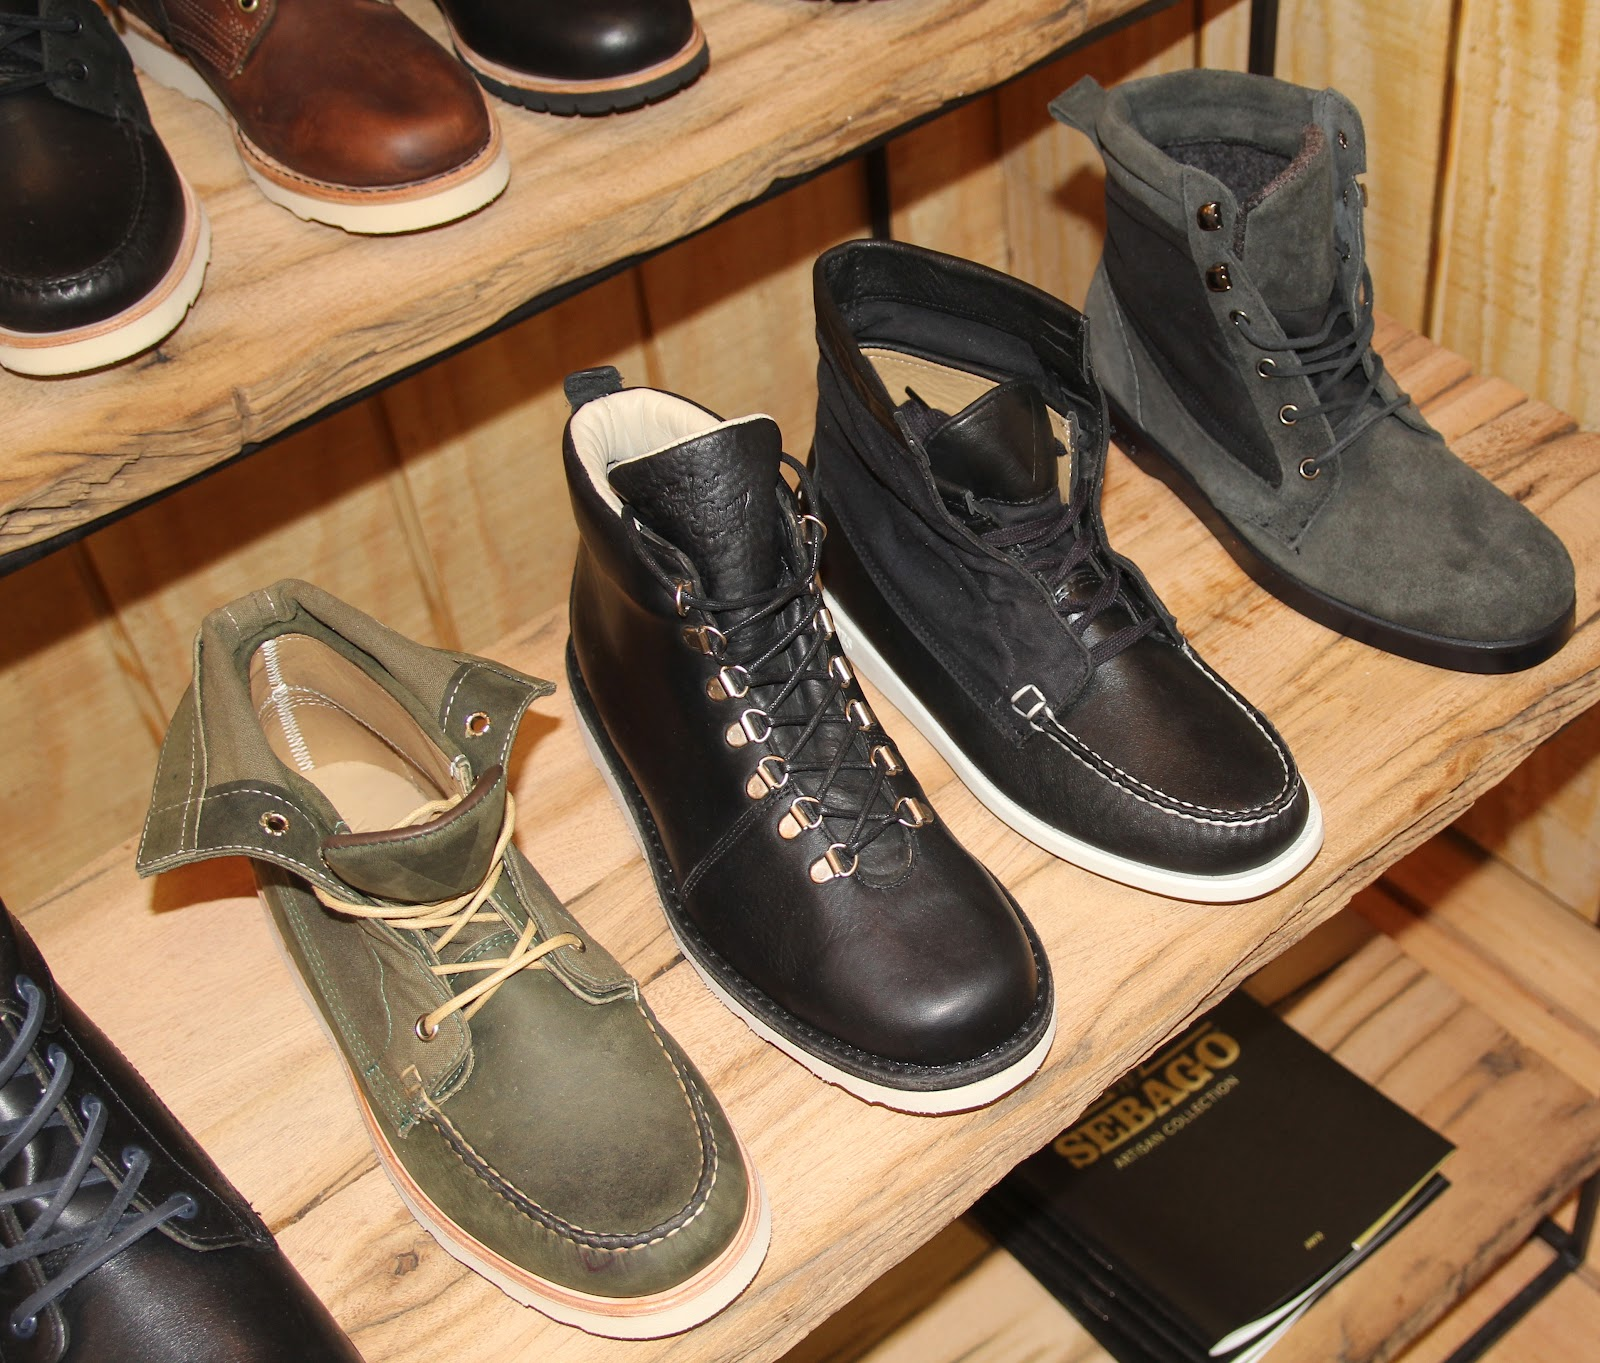 85df2904478fcf The Brother's Bray & Co. handsome leather Everest (Black-middle left),  Vane's Exo Command (Olive-left) and Kings Point Ronnie Fieg's(Black-middle  right)